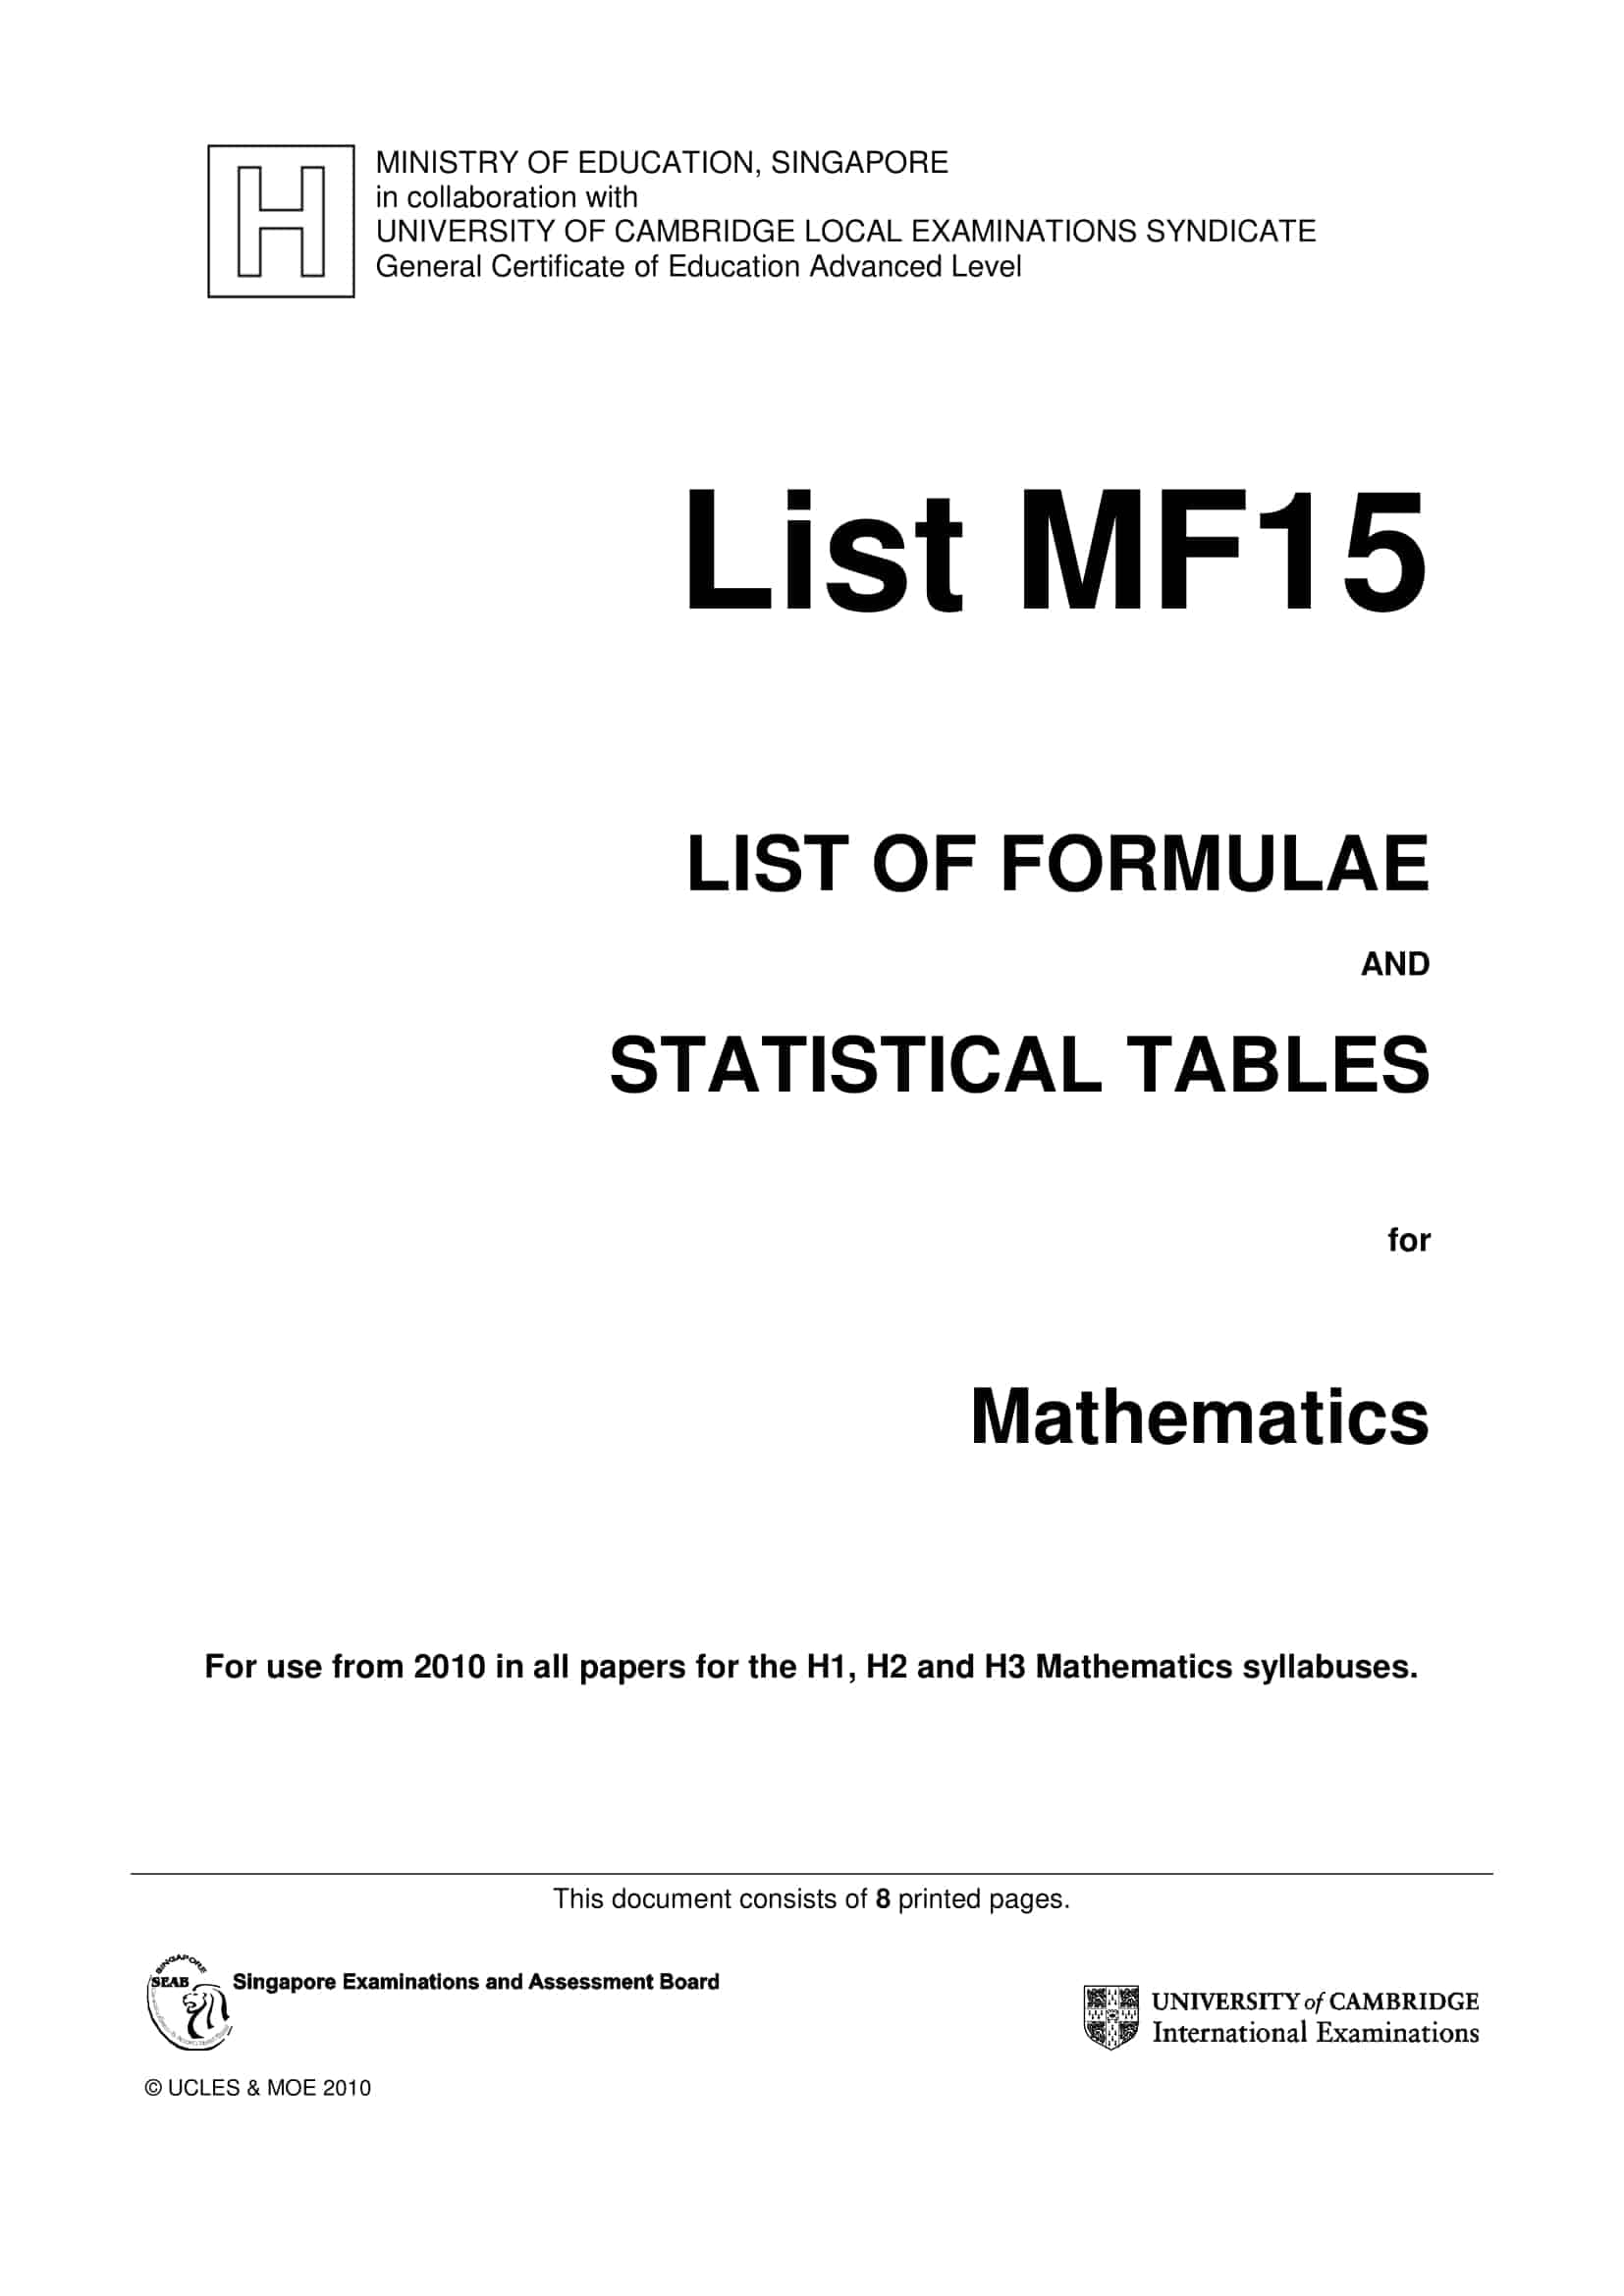 A Level MF15 Math Formula Sheet and List